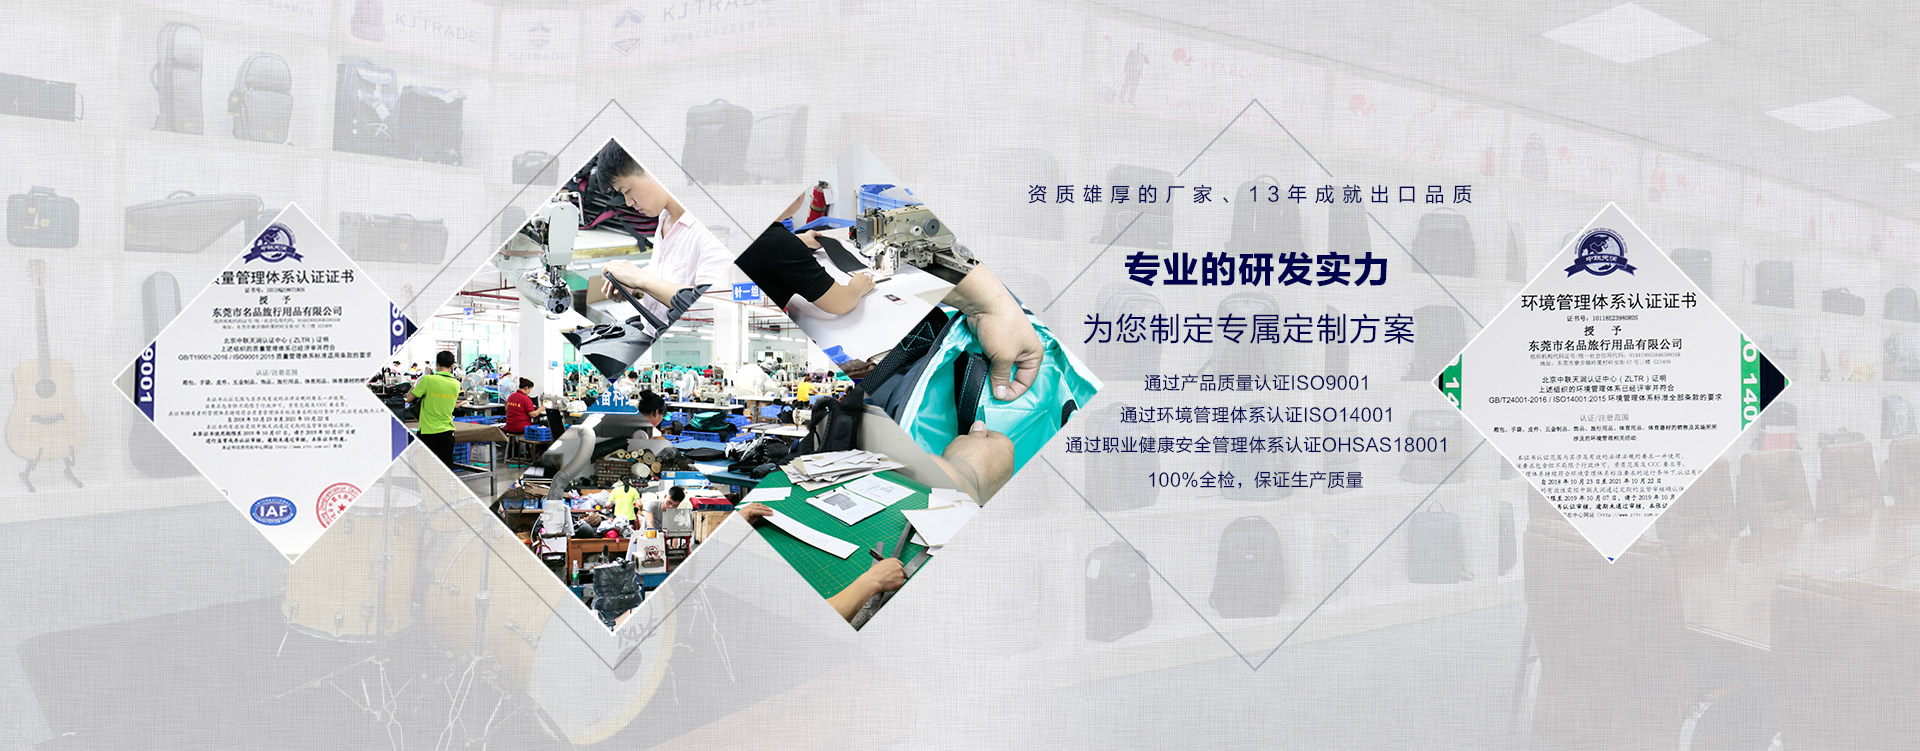 Dongguan mingpin luggage factory through the certification and production workshop site